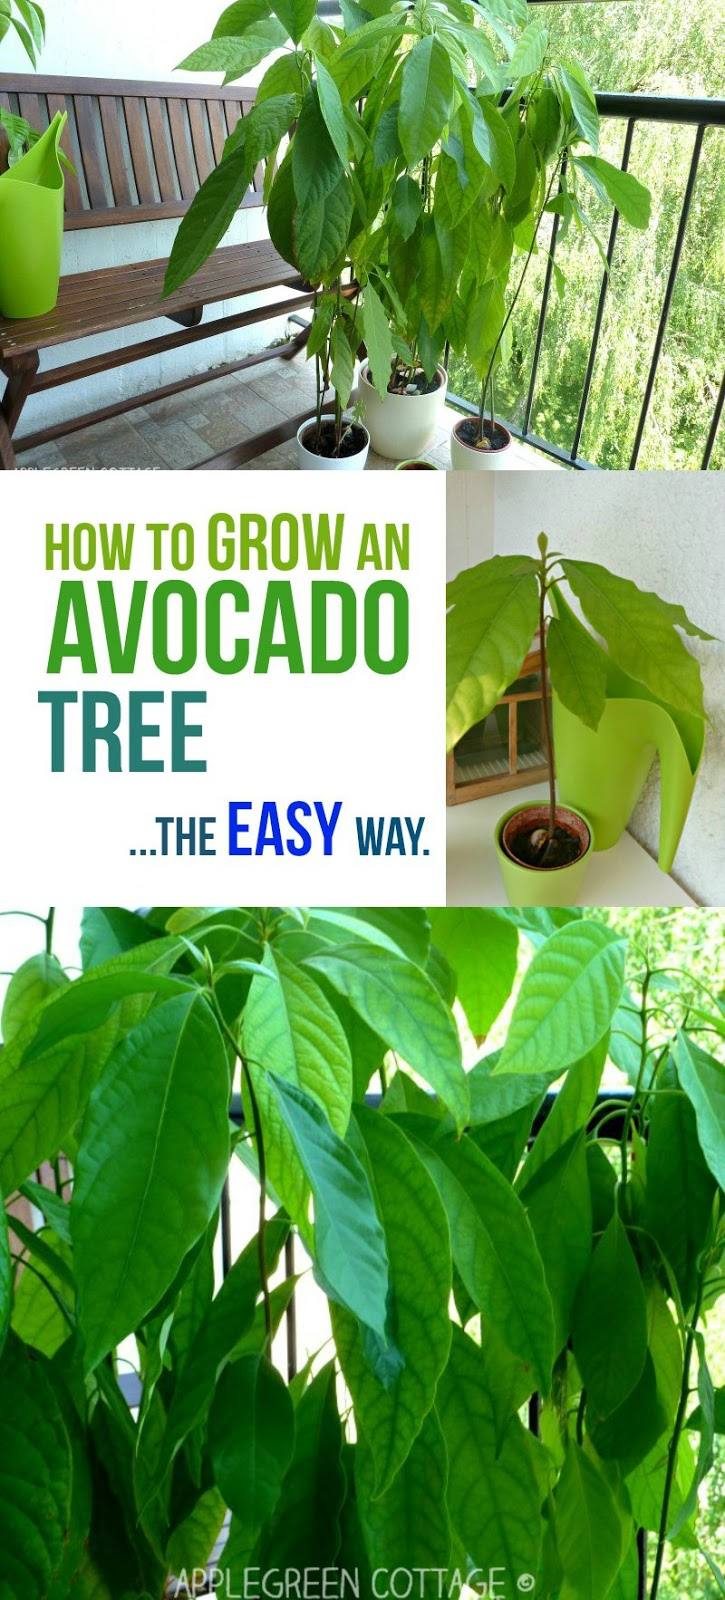 How to grow an avocado tree the easy way applegreen for How do you grow an avocado seed